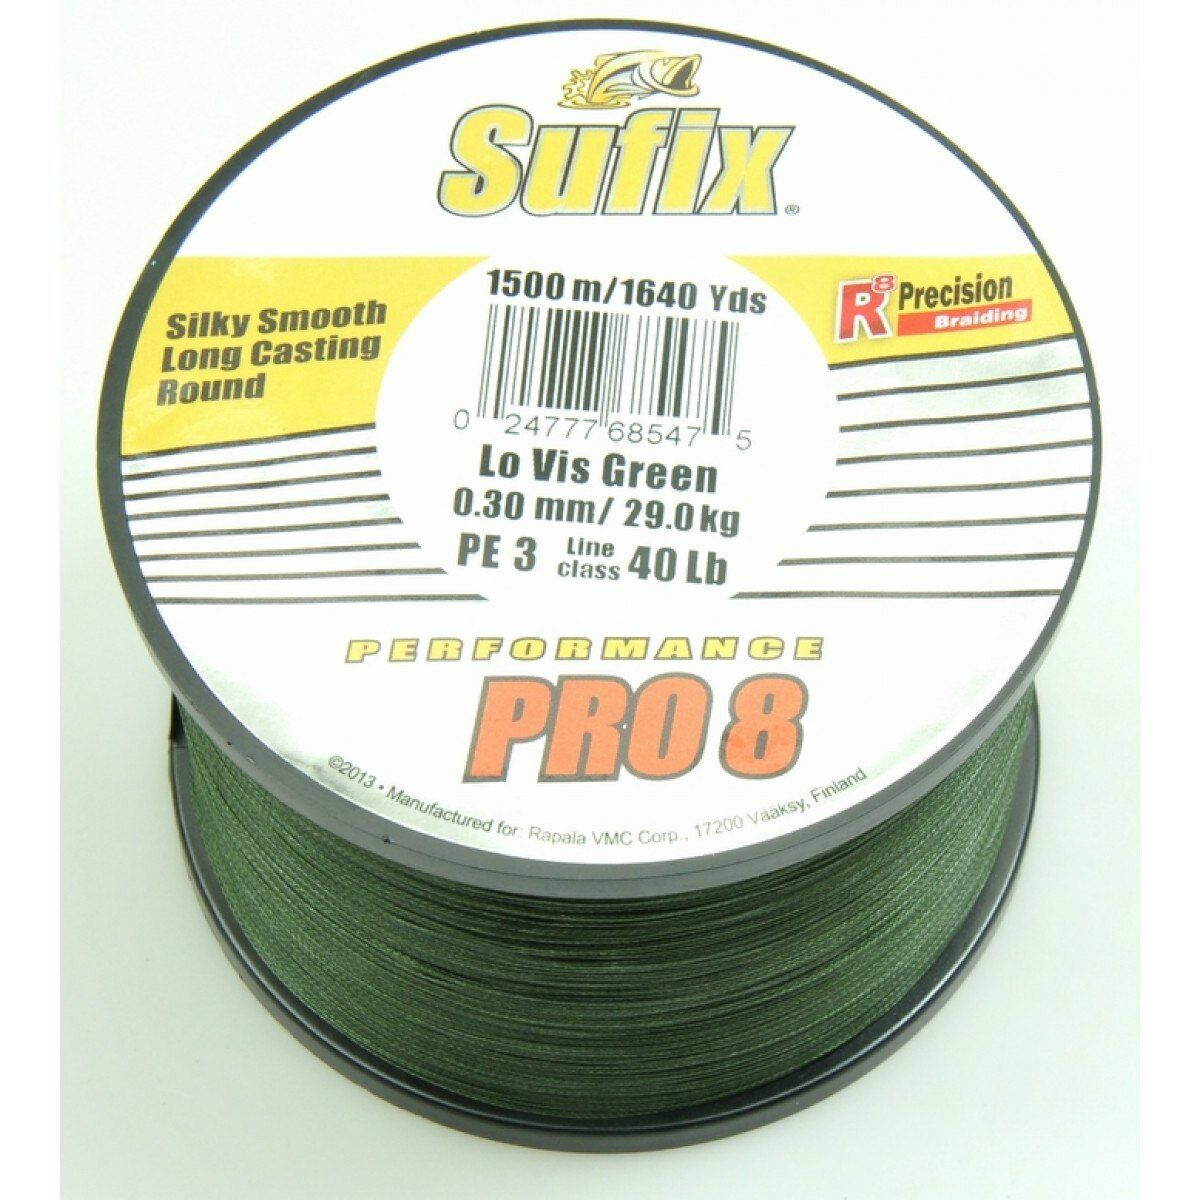 Sufix Performance Pro 8 Low Vis Green 1500m Braided Line (Choice of Diameter)